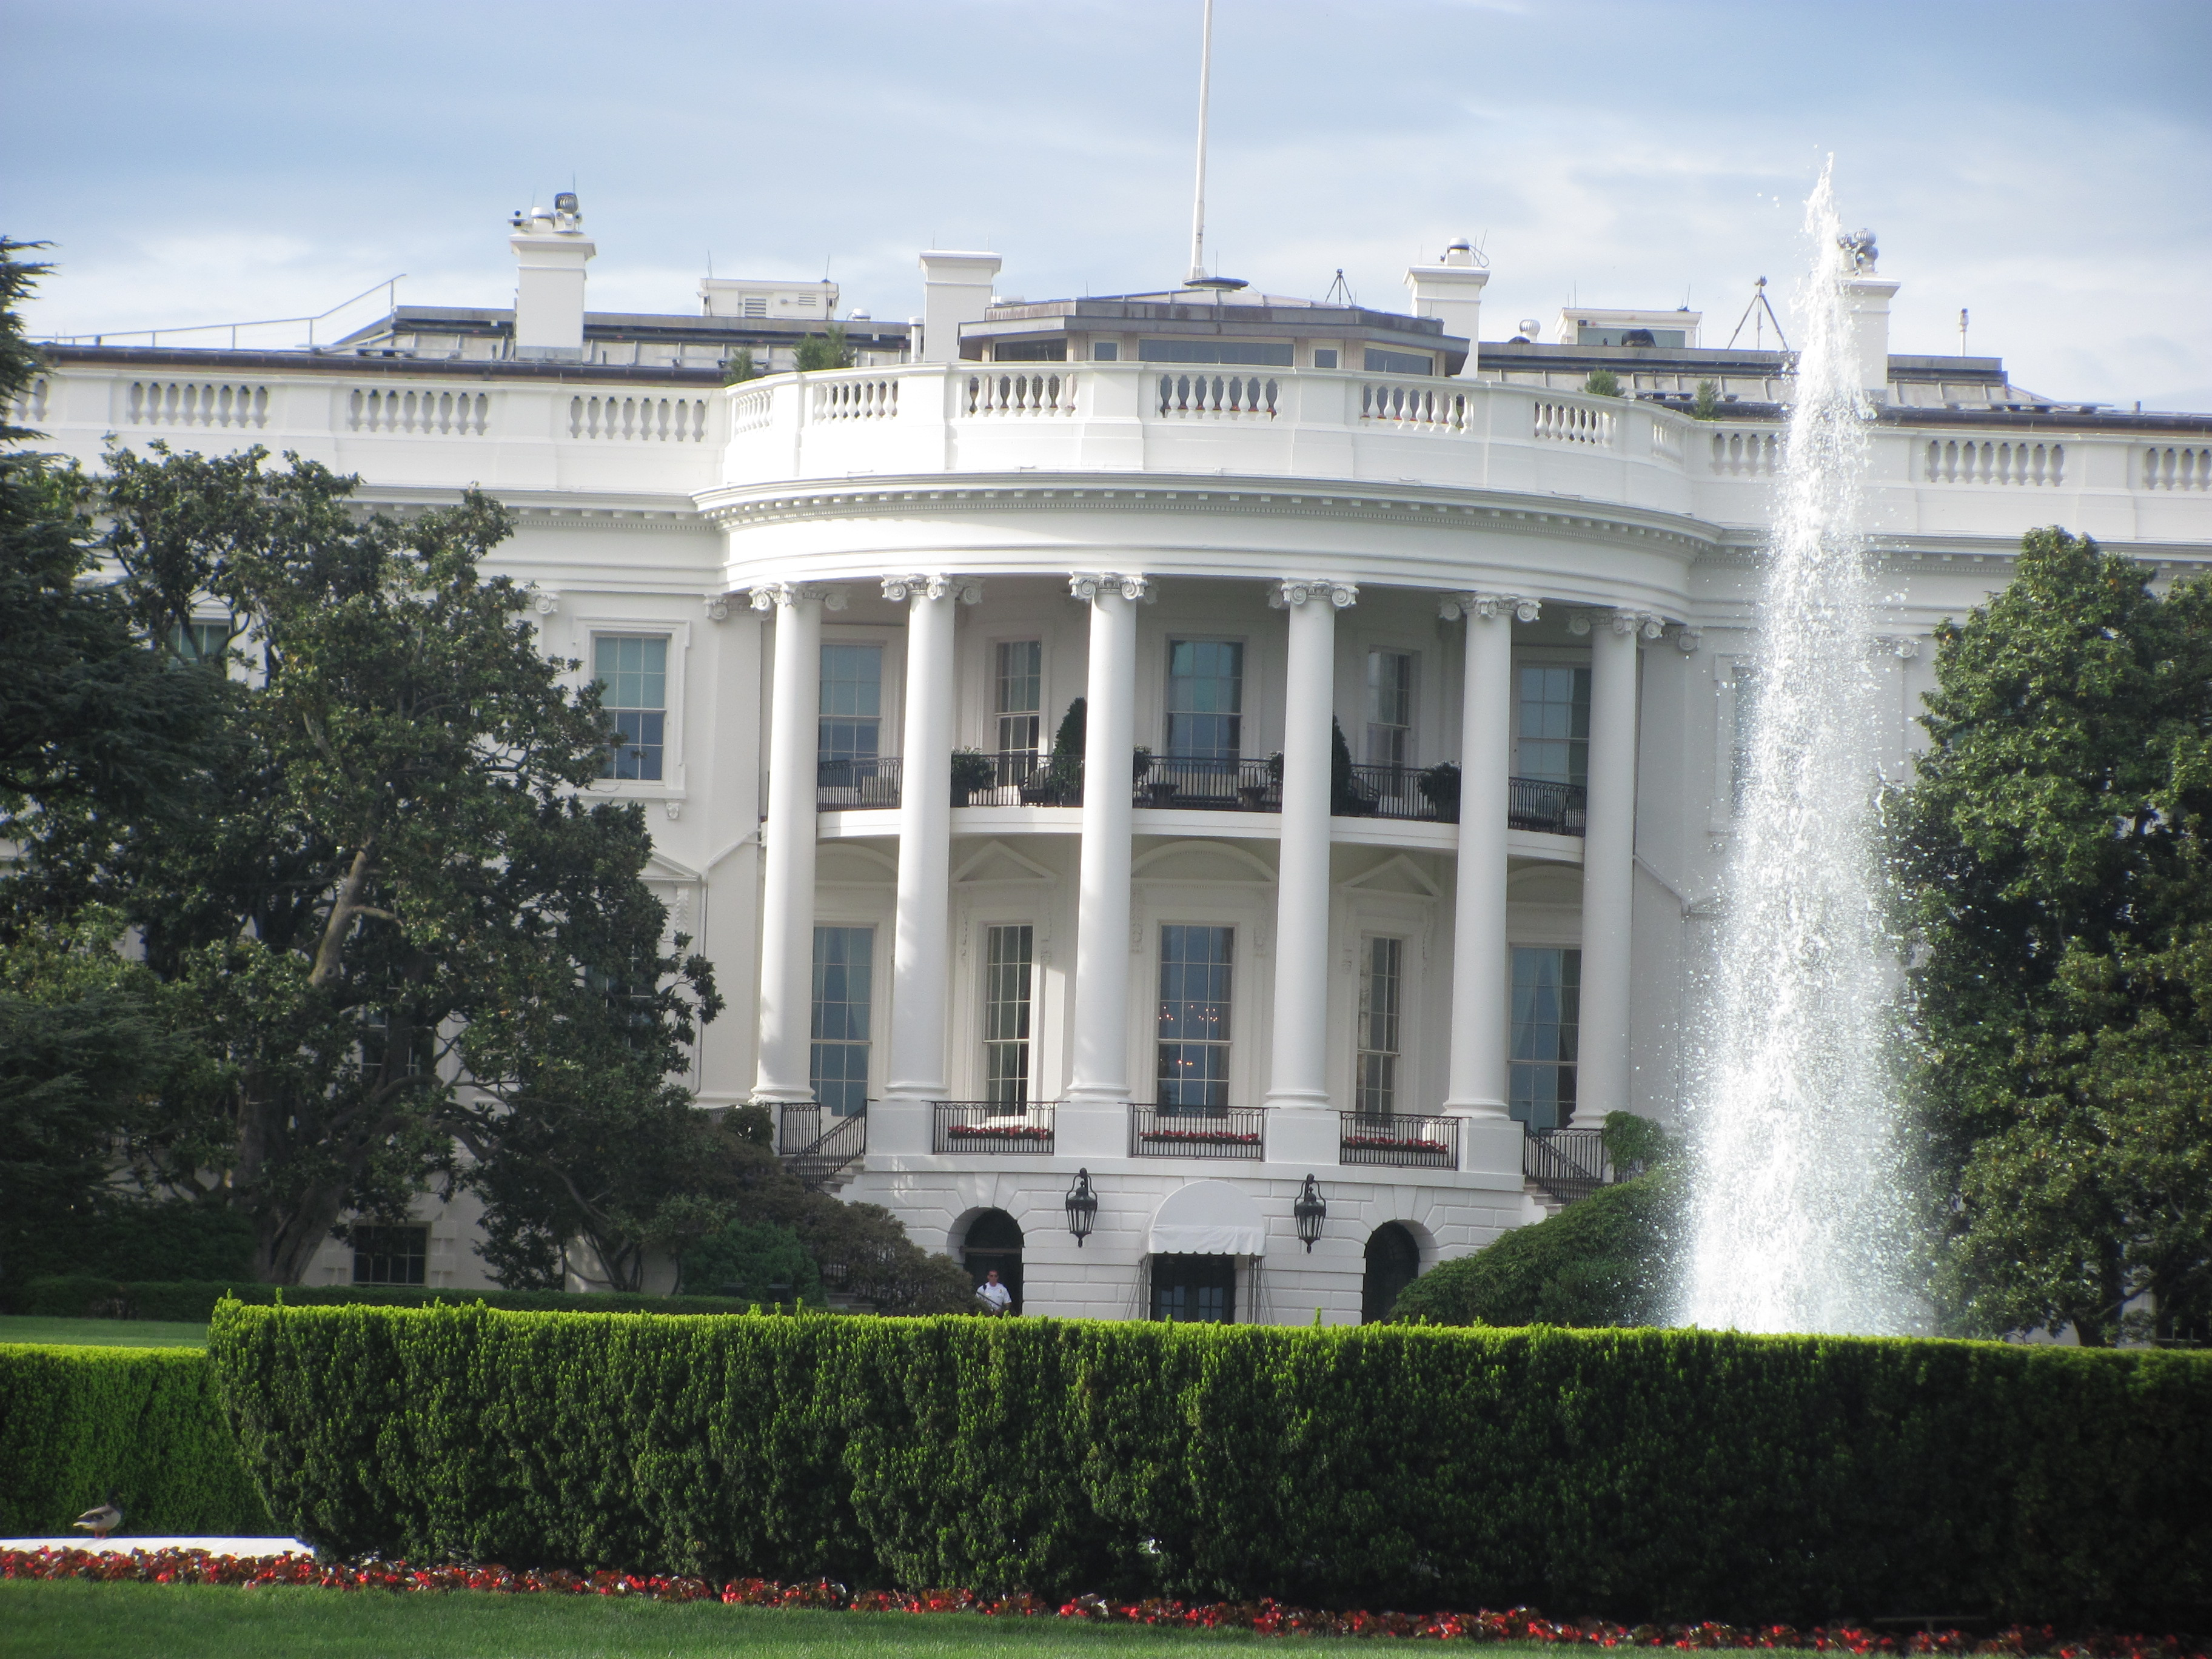 Closest view of White House